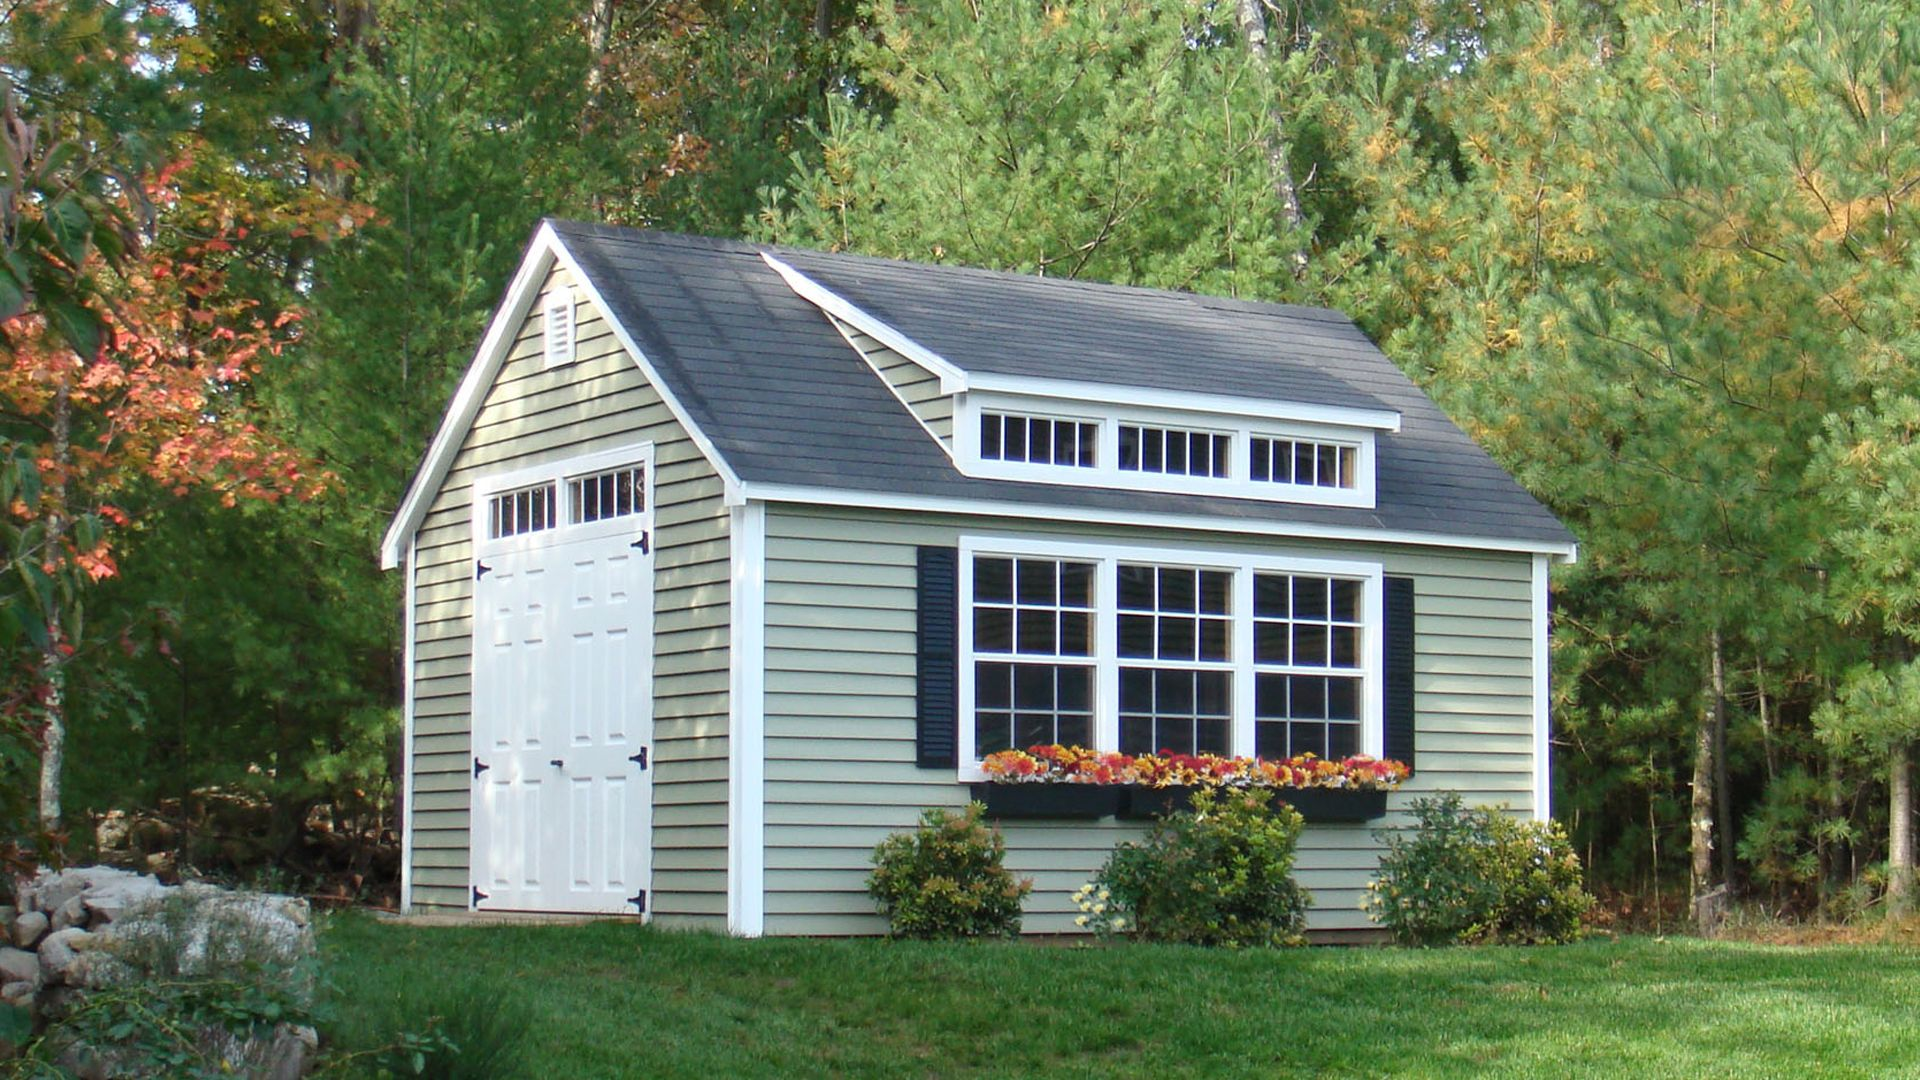 What s that thing on the roof house ranch decor and for House plans with shed dormers